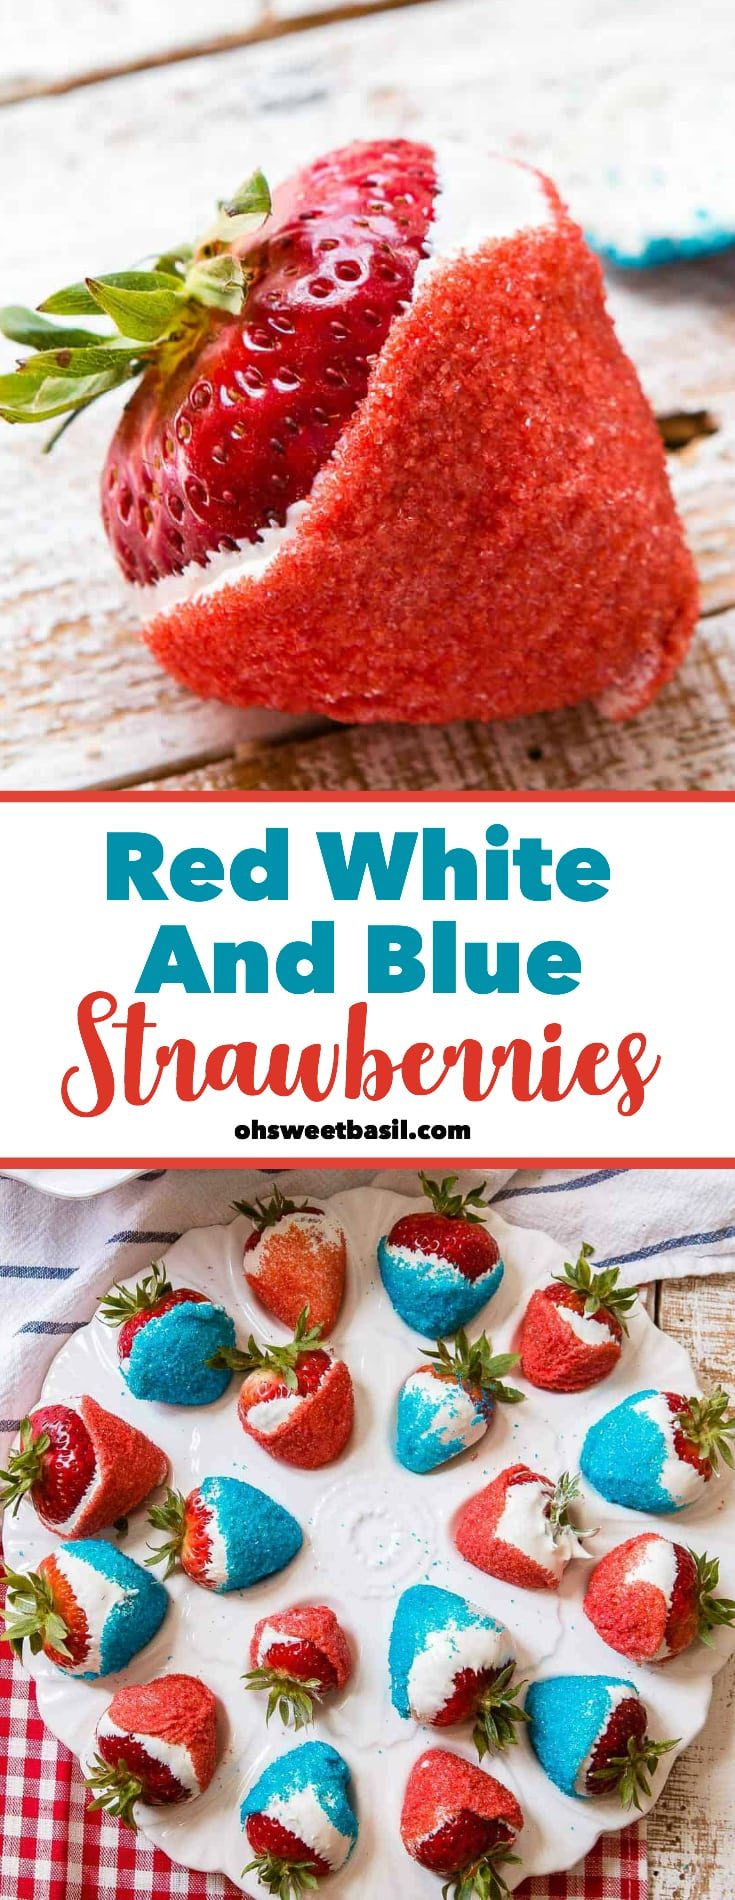 Red white and blue strawberries dipped in white chocolate and red and blue sprinkles